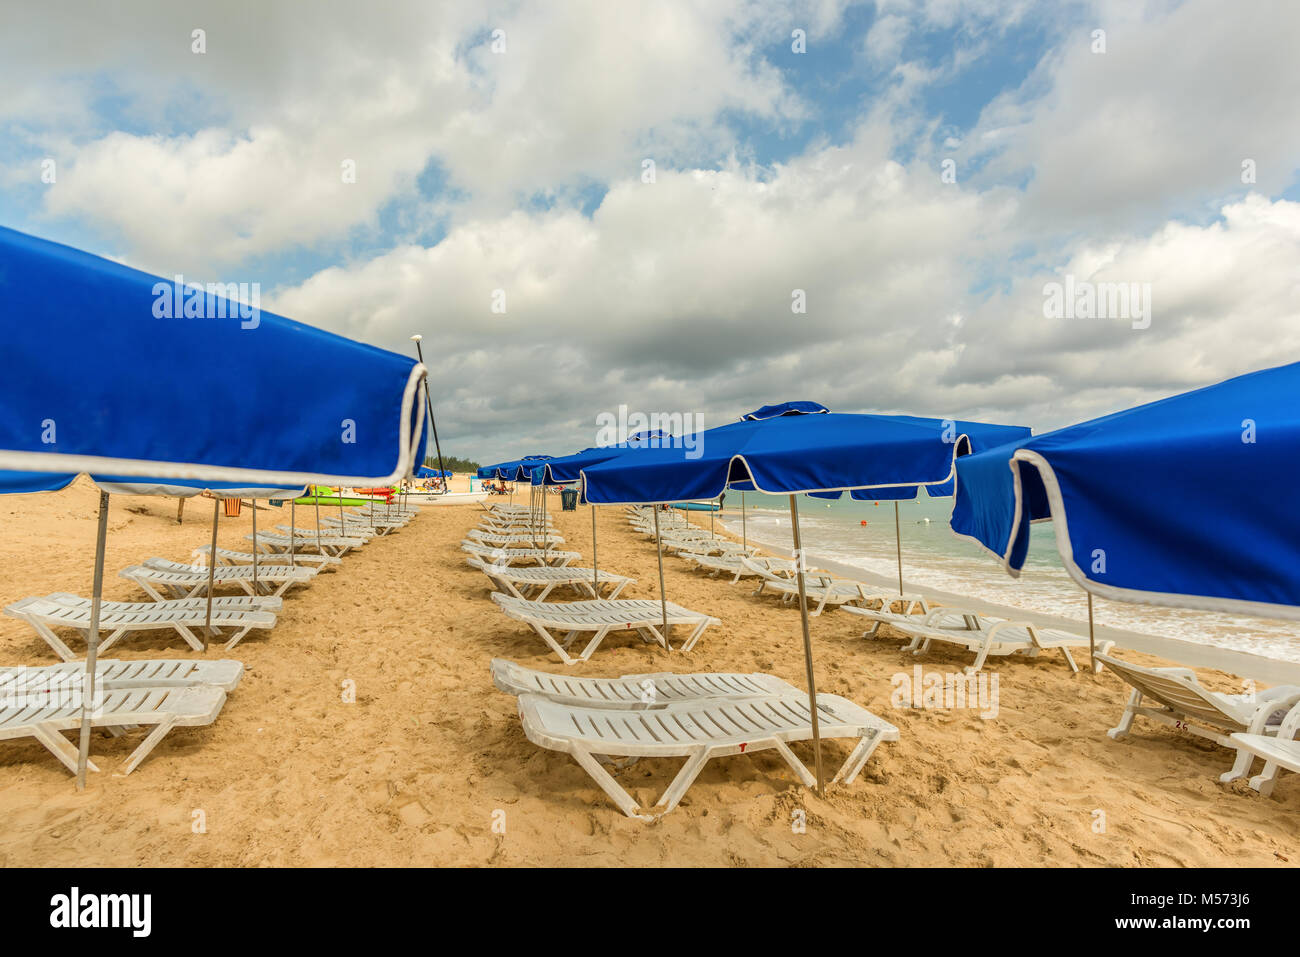 white chaise lounges and blue umbrellas stand on a beach in the sand near the ocean with green waves and a blue - Stock Image